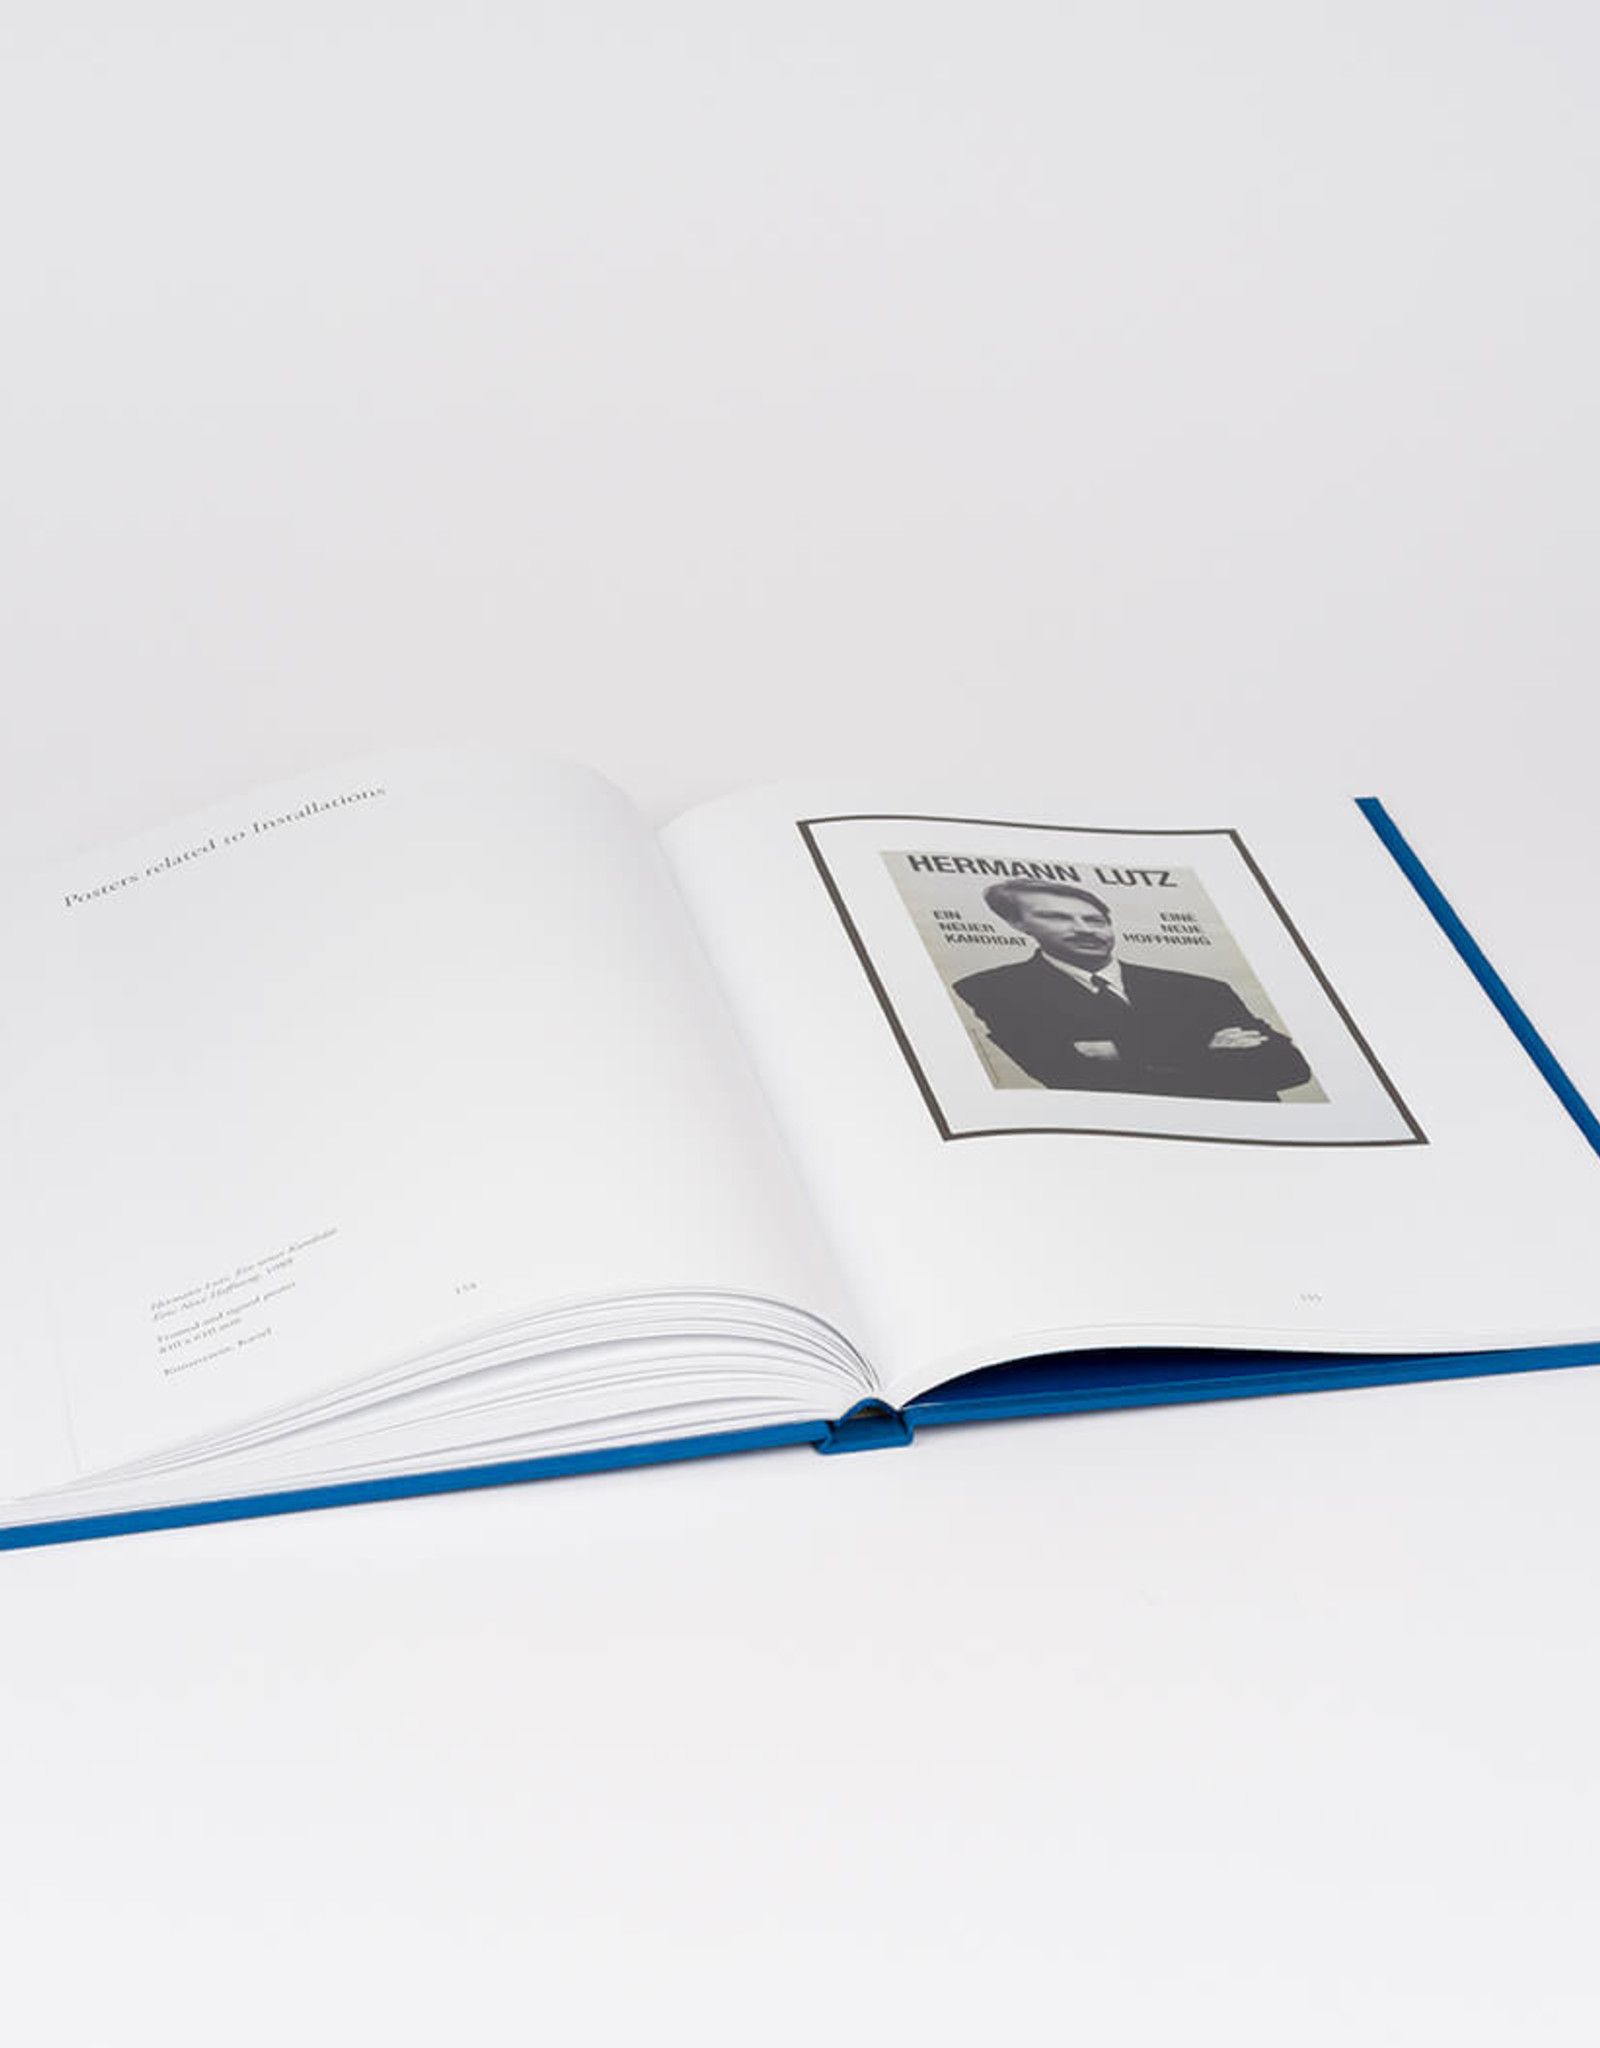 Guillaume Bijl - Multiples & Editions